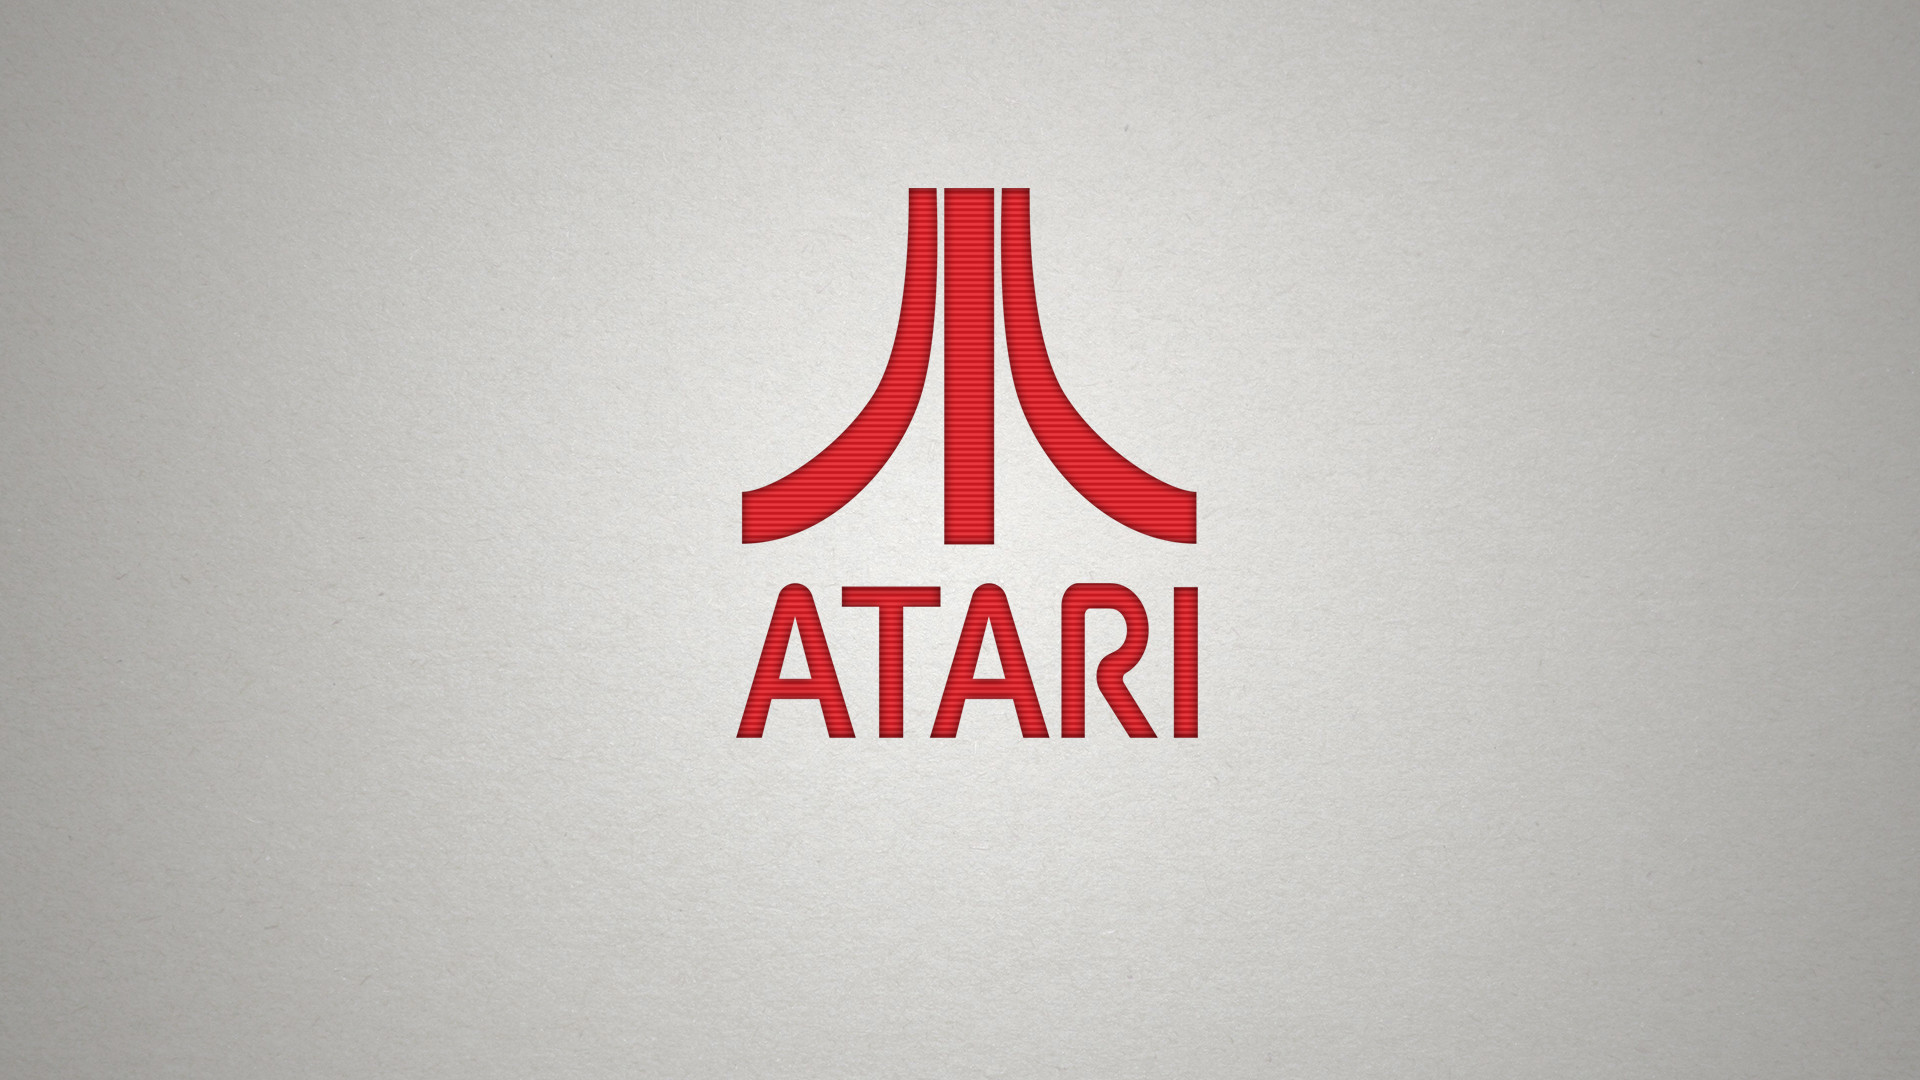 Atari Logo Wallpaper Video game – atari wallpapers